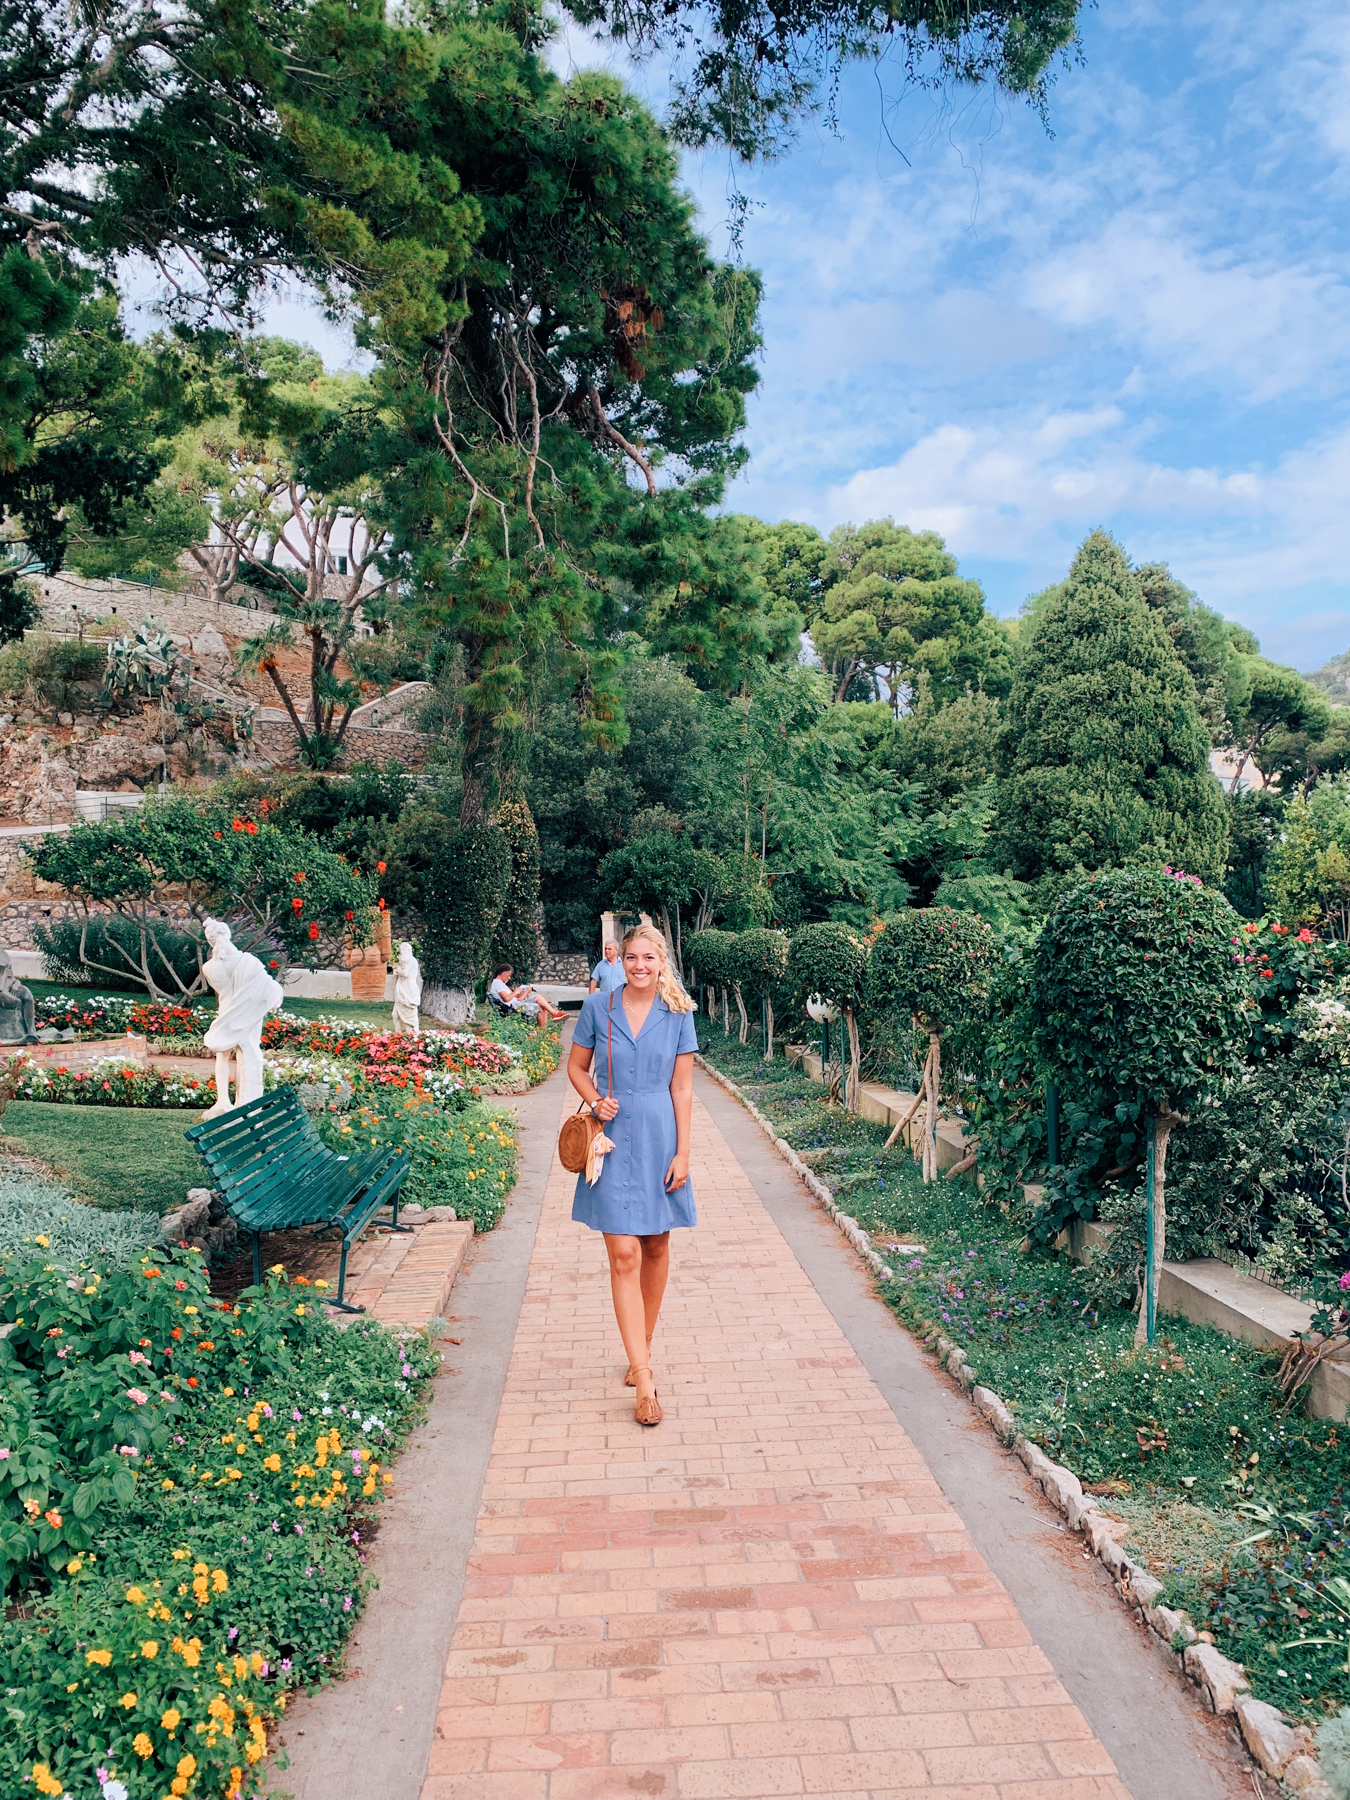 Inside the beautiful Gardens of Augustus.